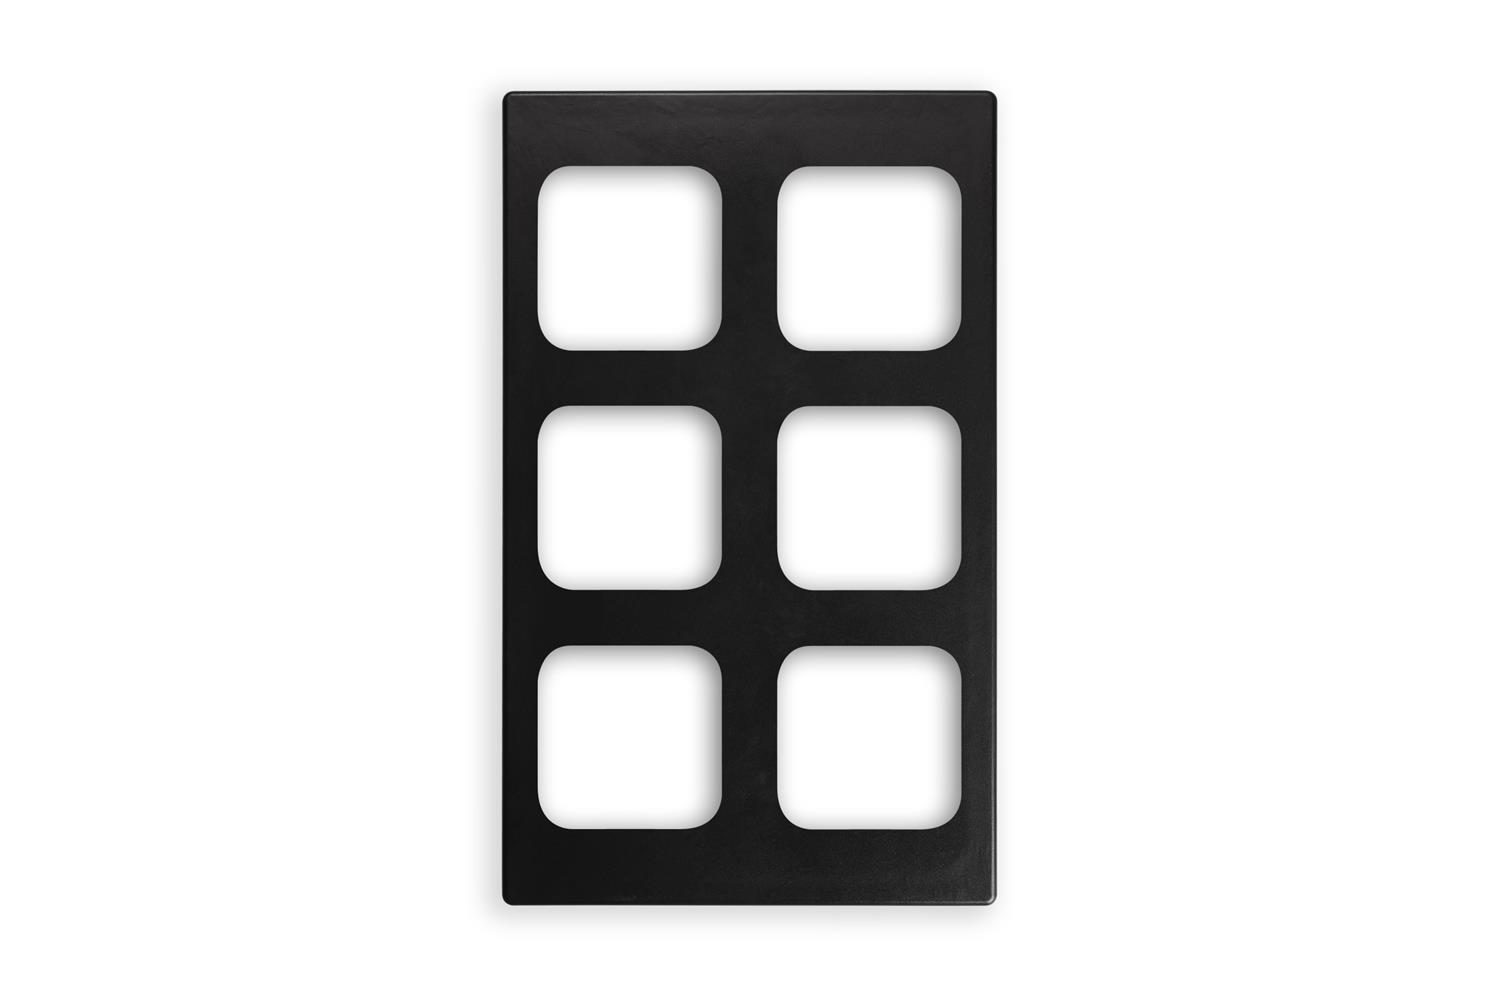 Vollrath 8244318 Miramar Resin Templates for Contemporary Pans